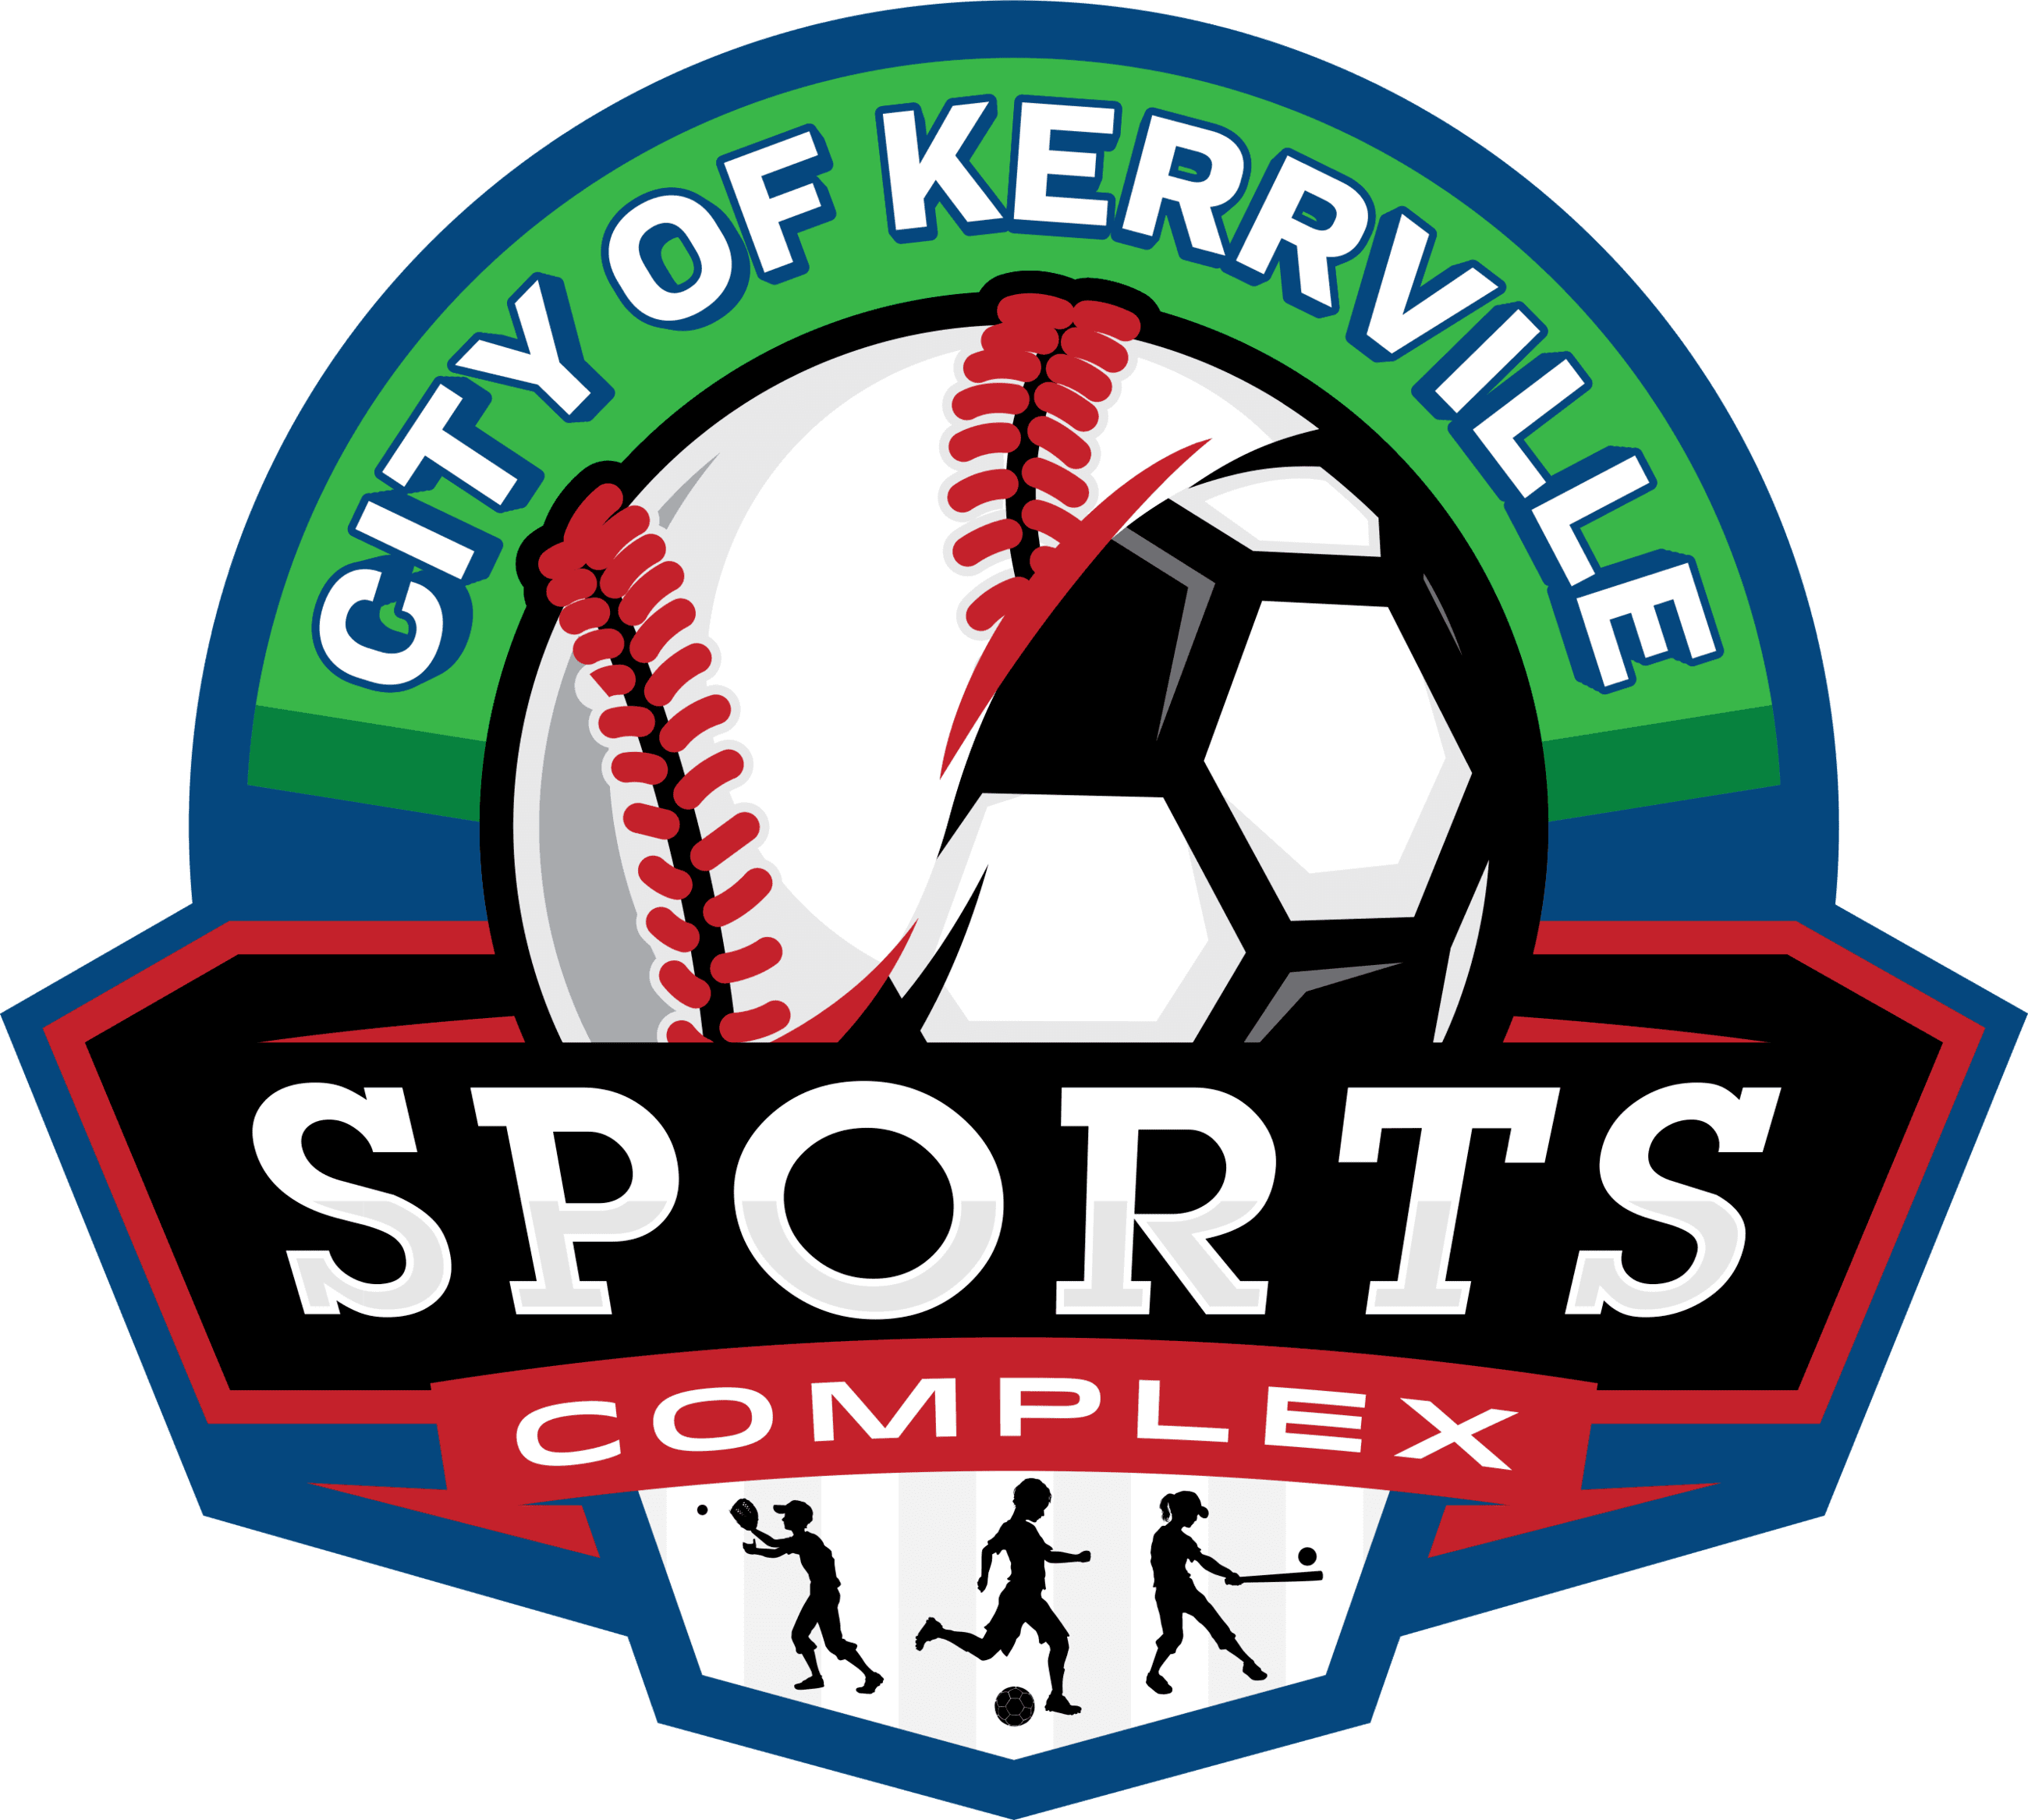 LOGO - City of Kerrville - Sports Complex